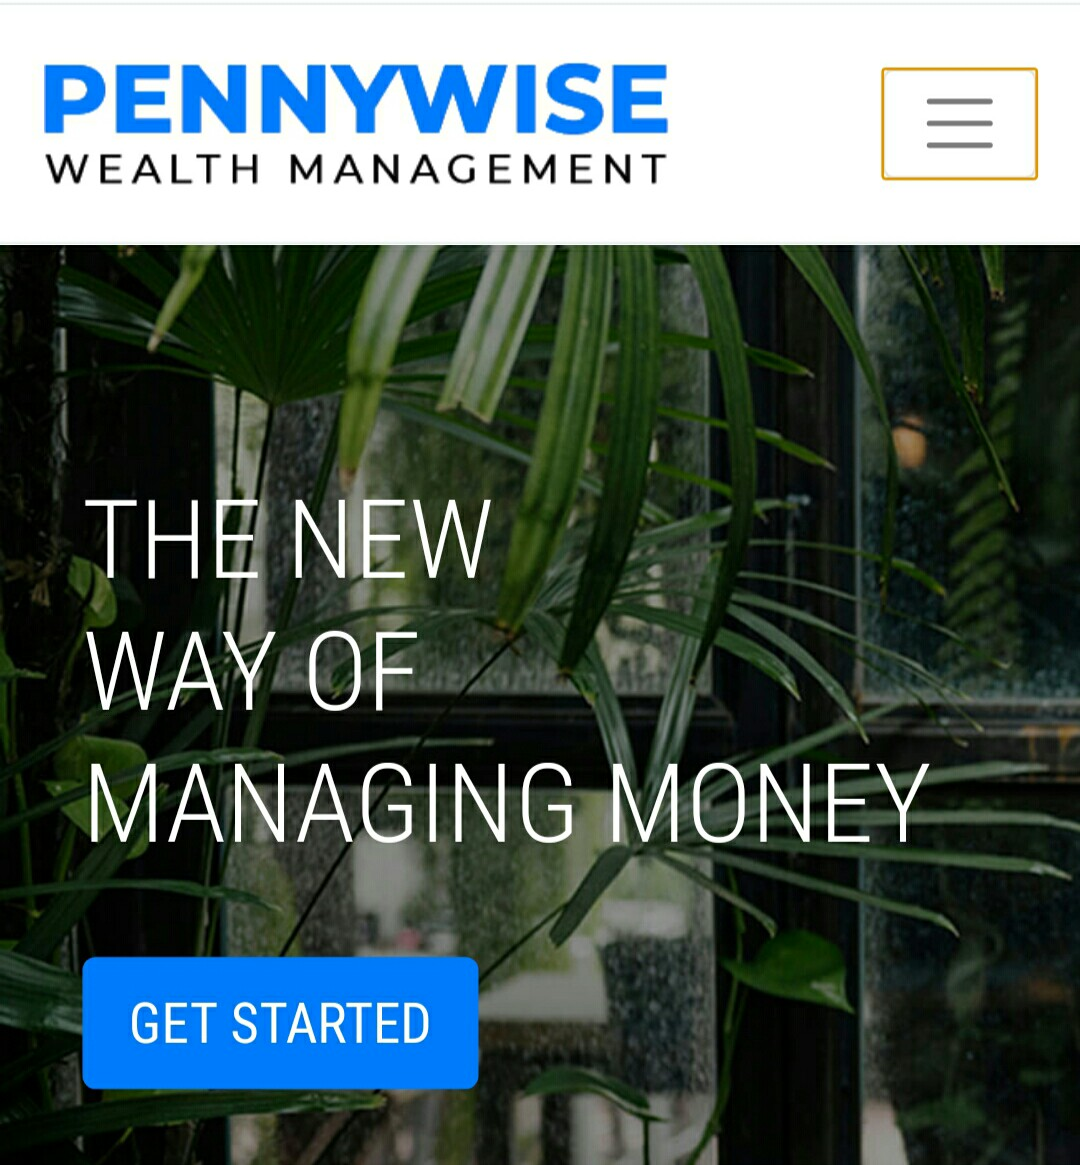 Pennywise Investment Reviews - Scam Or Legit